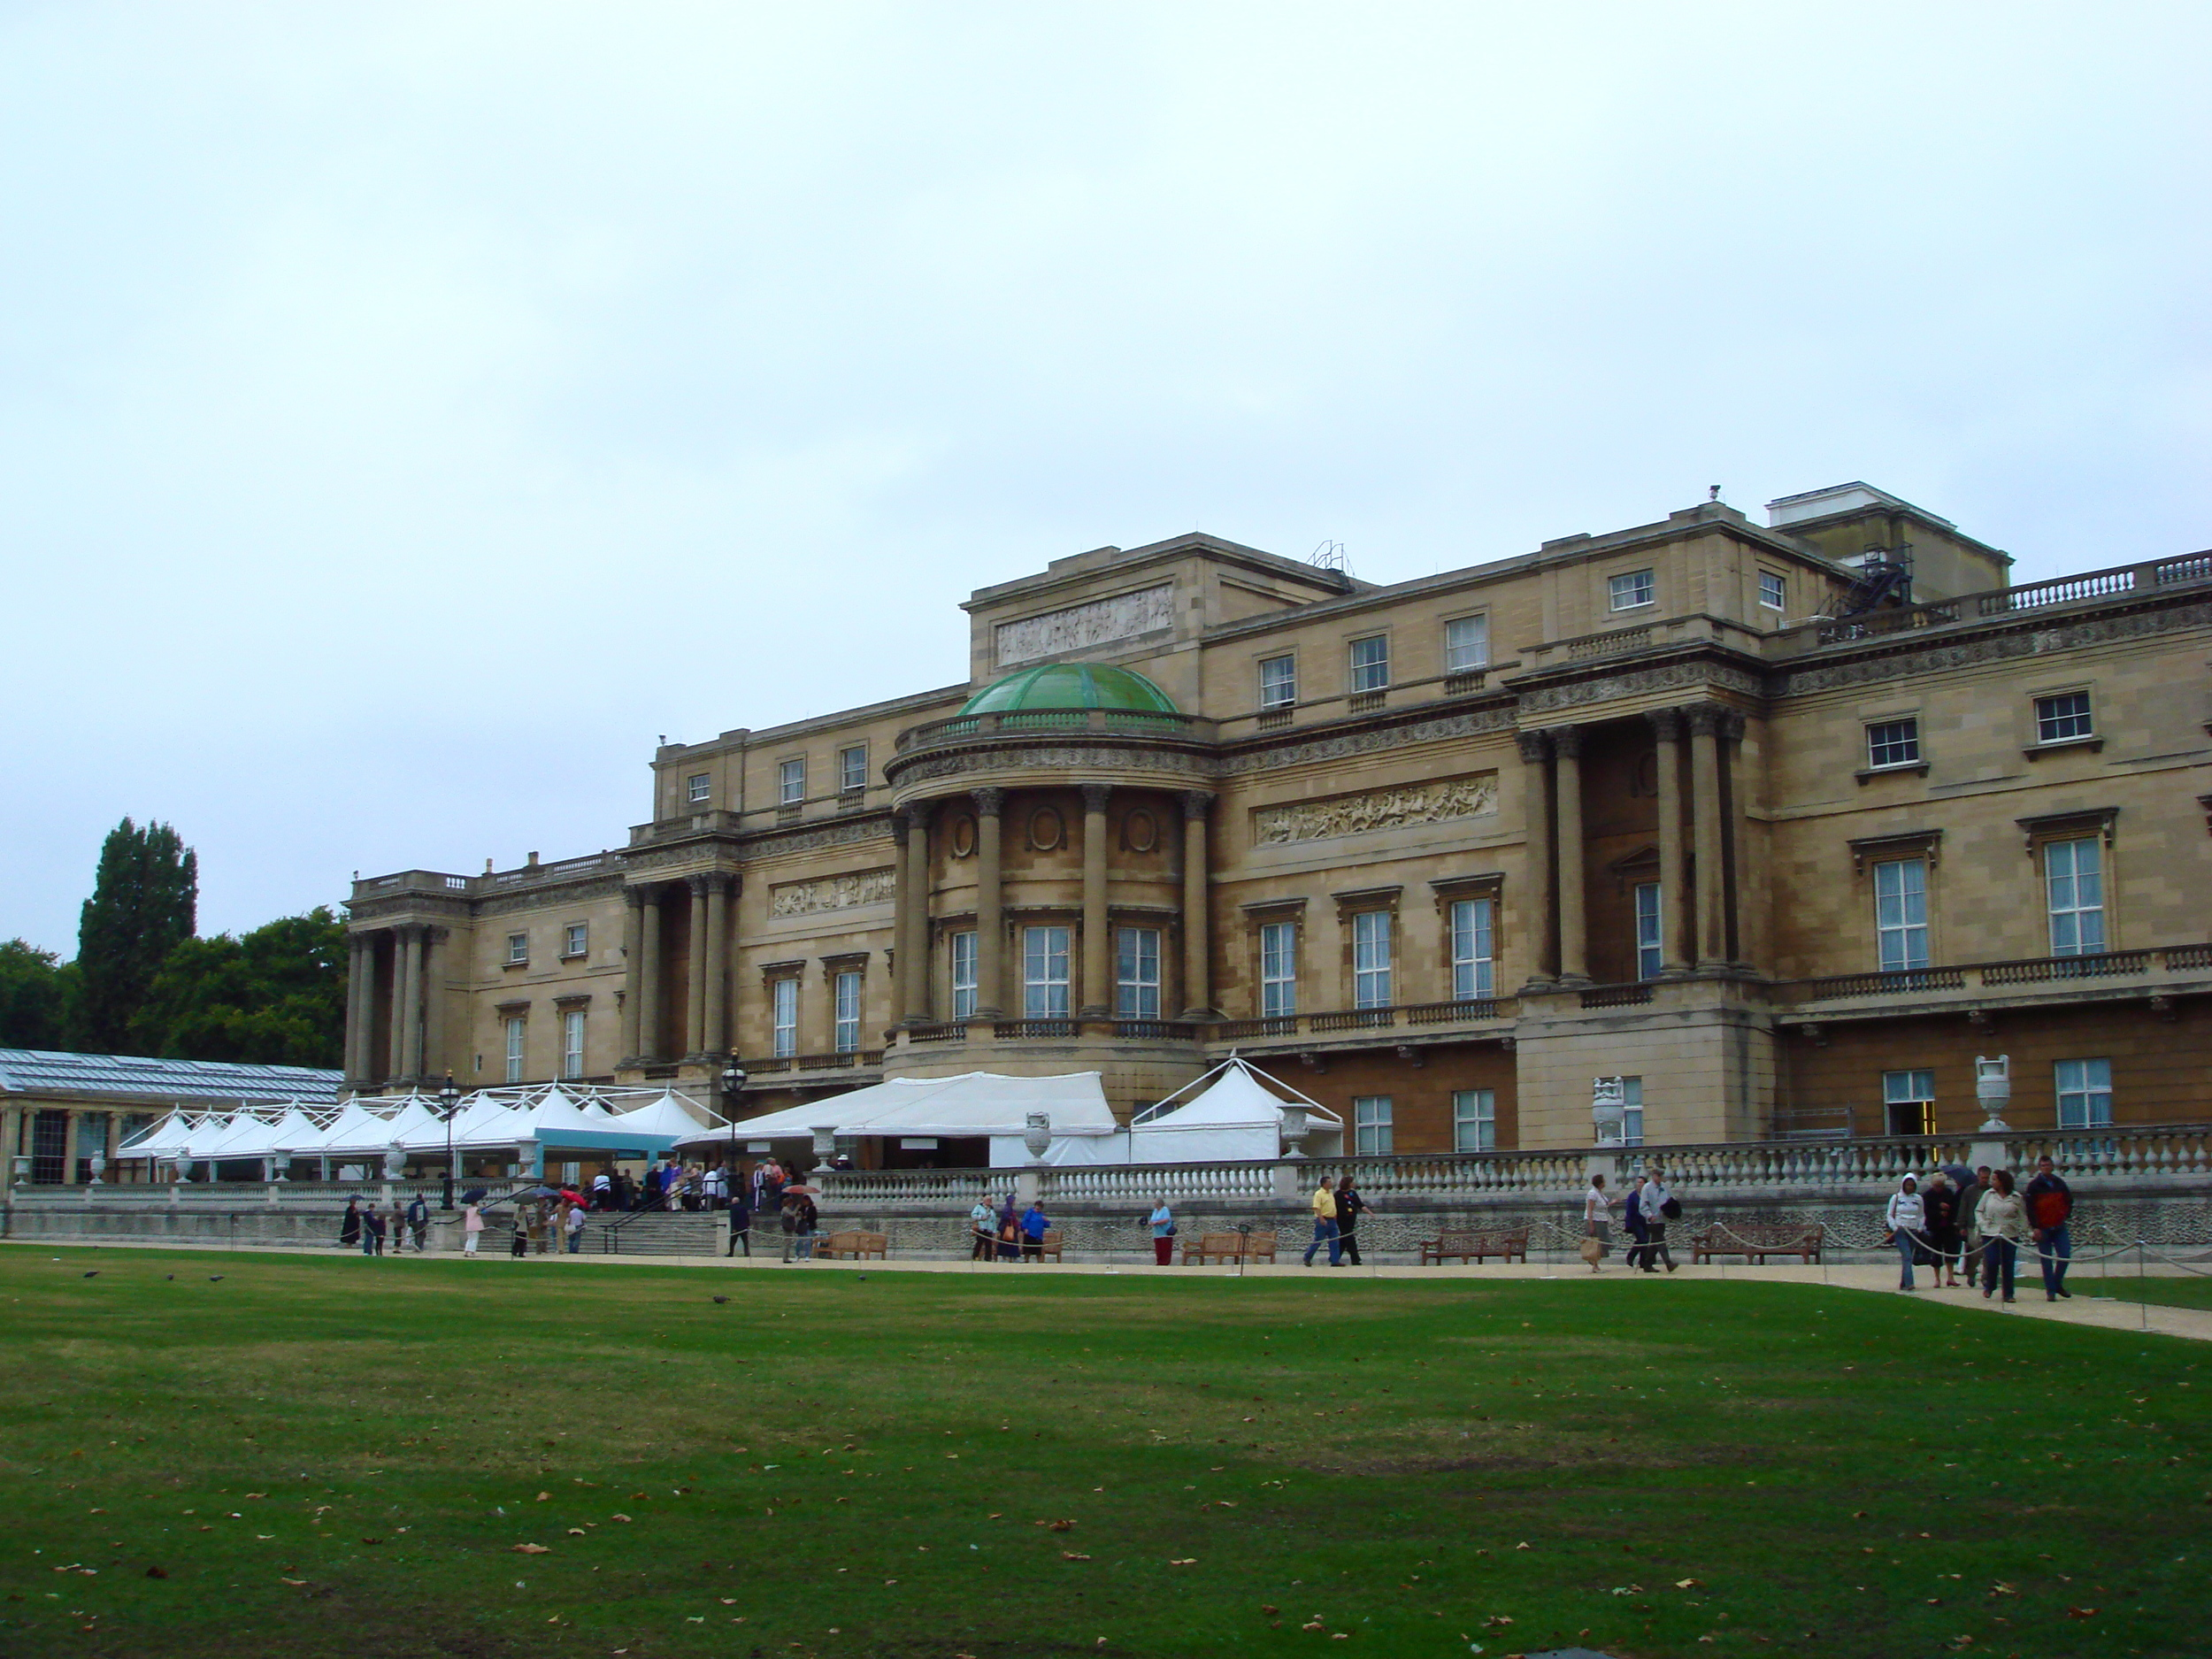 Buckingham Palace from the back